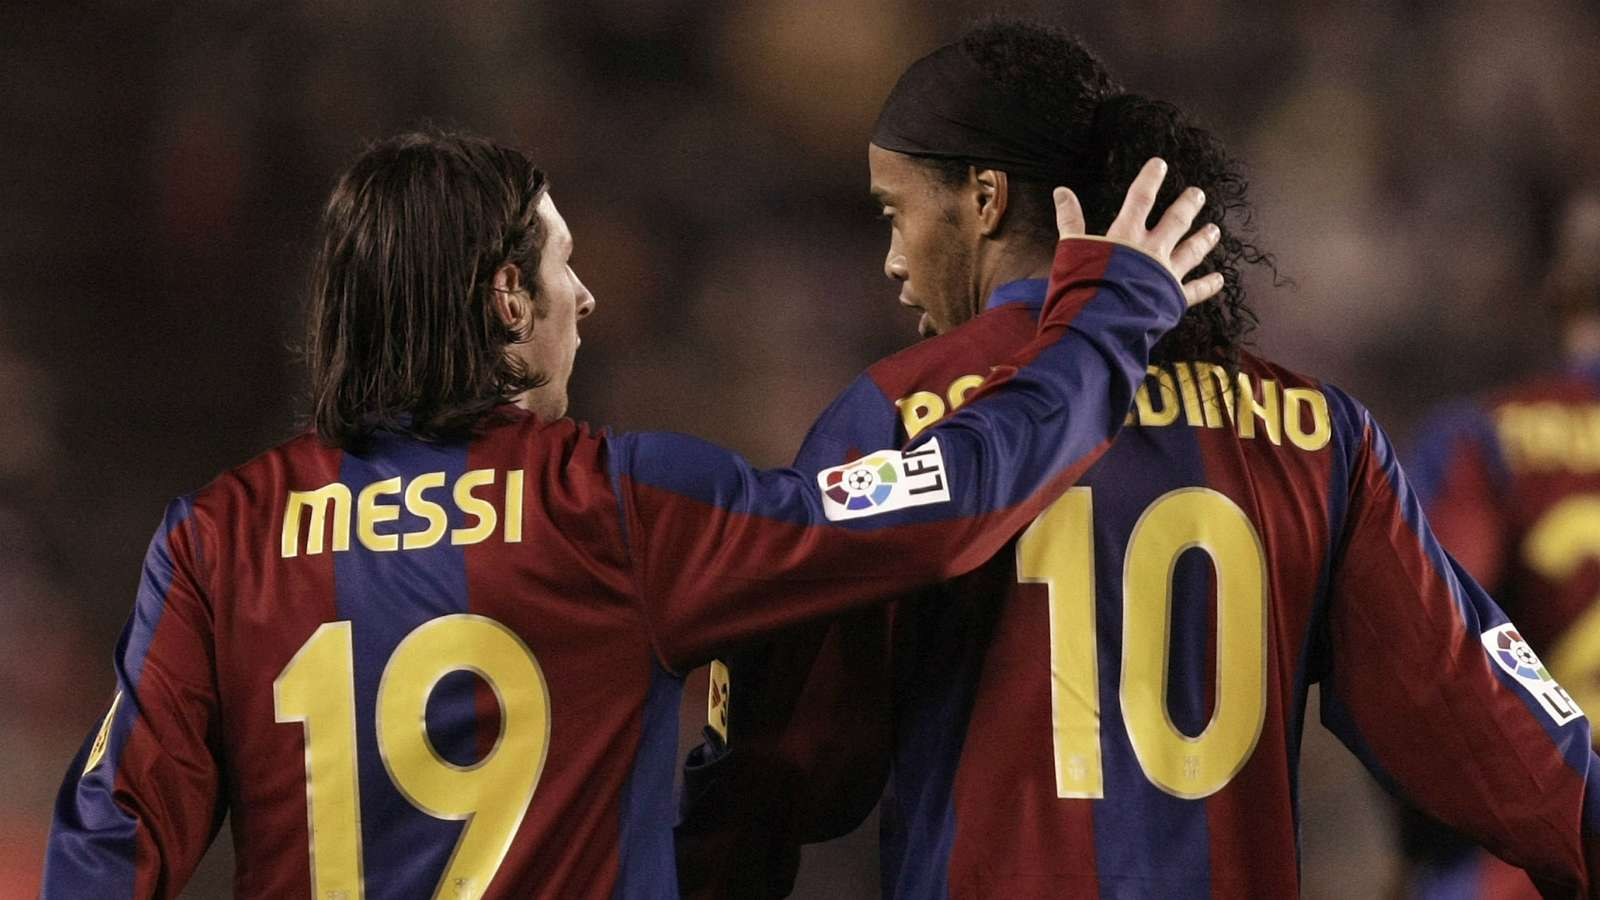 Messi didn't need anything from me at Barcelona - Ronaldinho